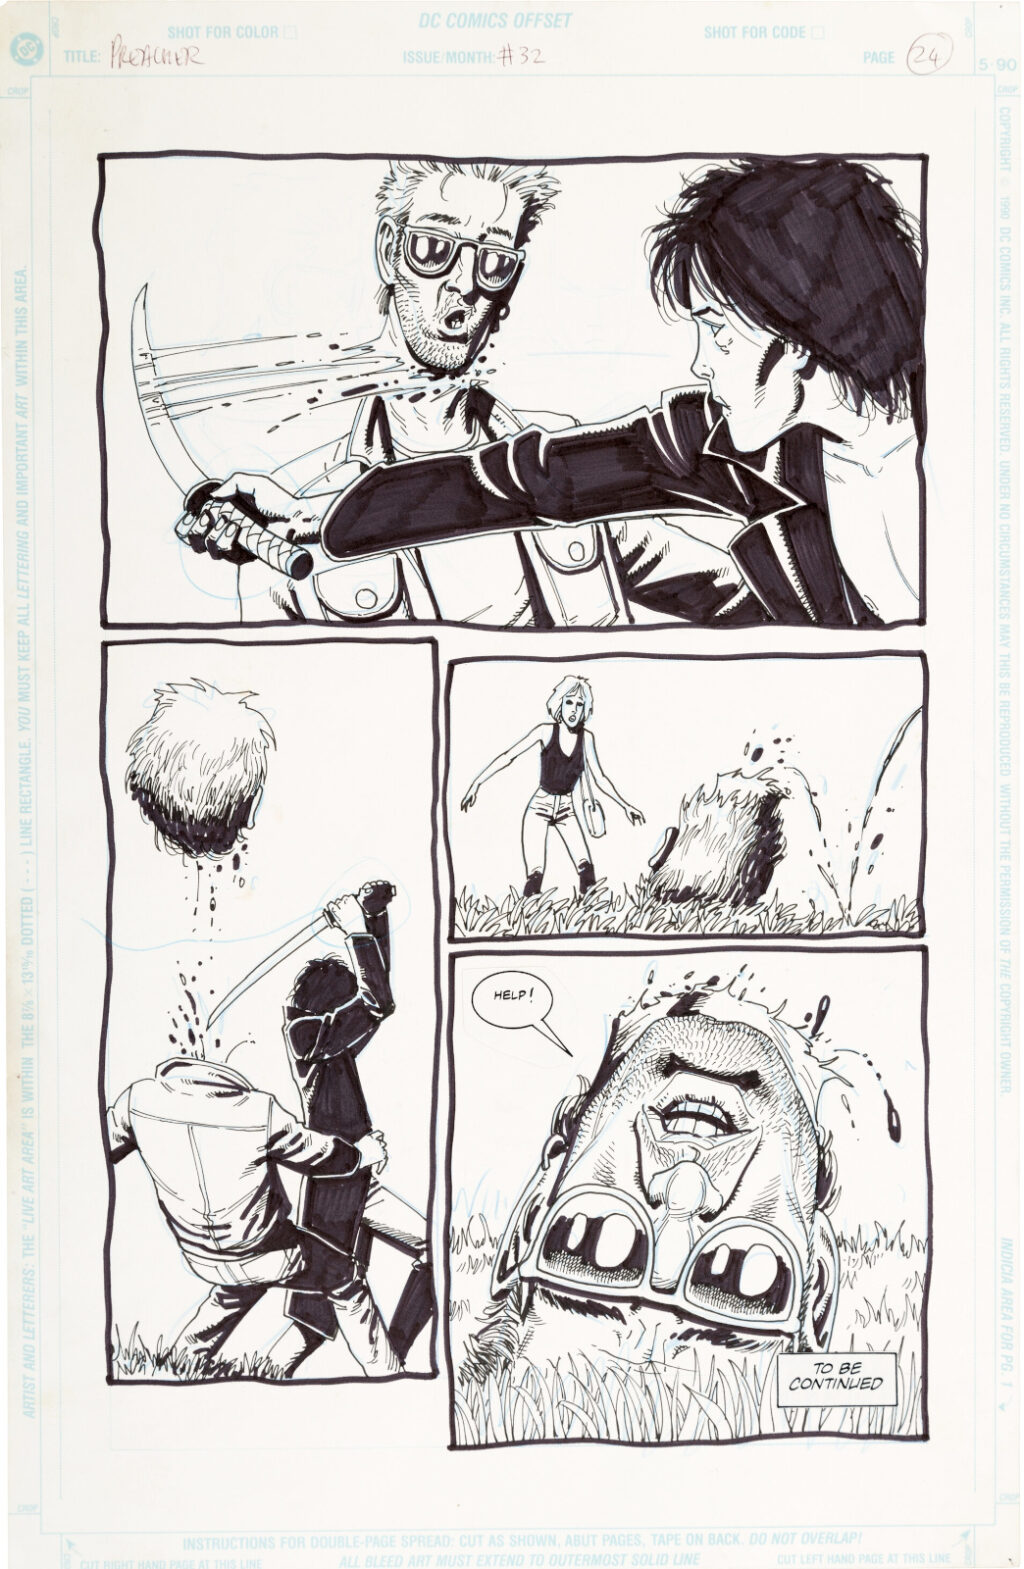 Preacher issue 32 page 24 by Steve Dillon